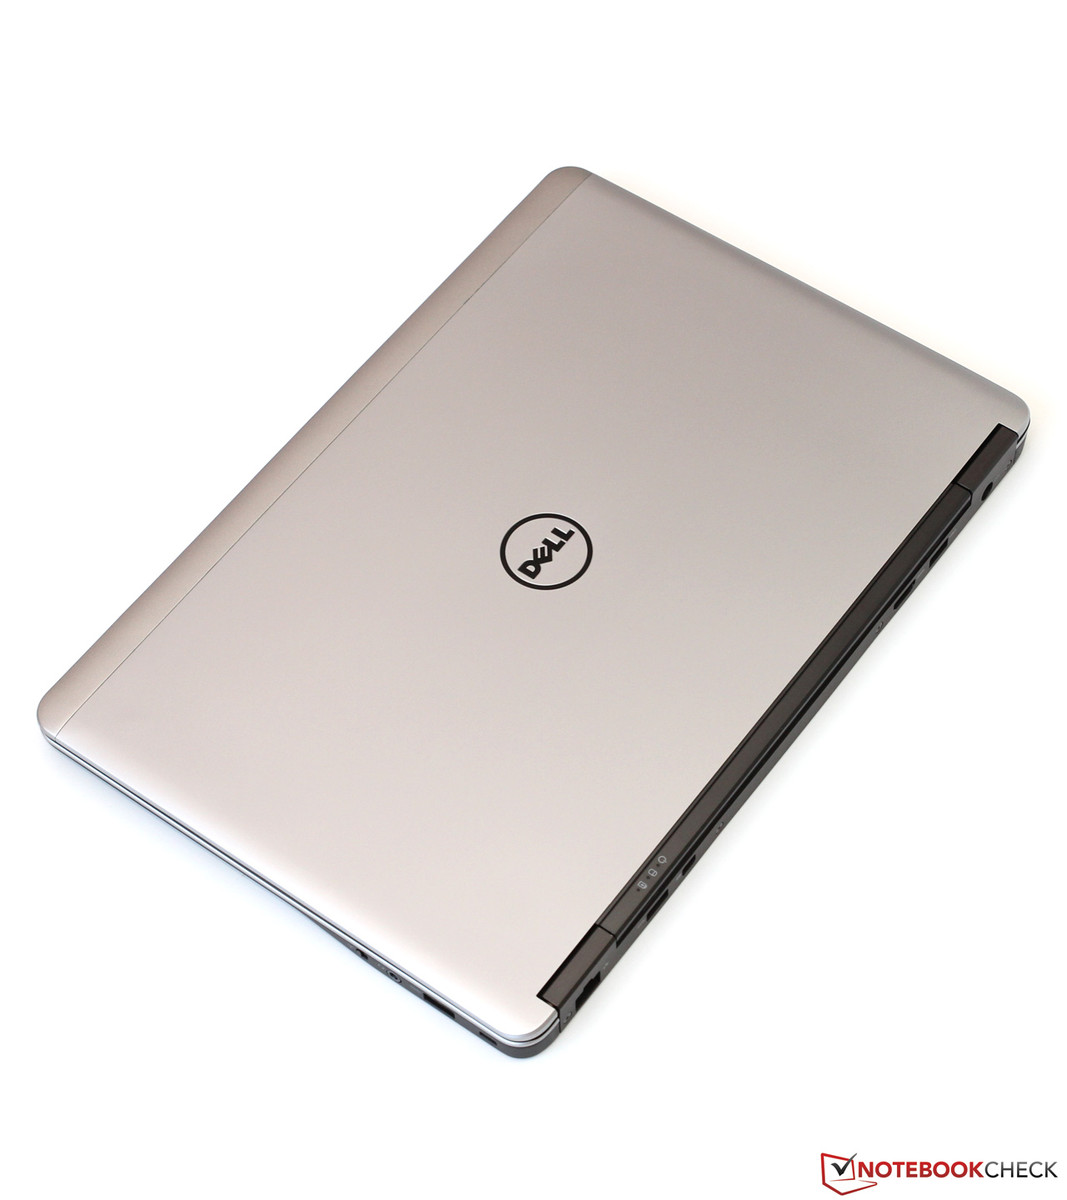 dell latitude e7440 user manual